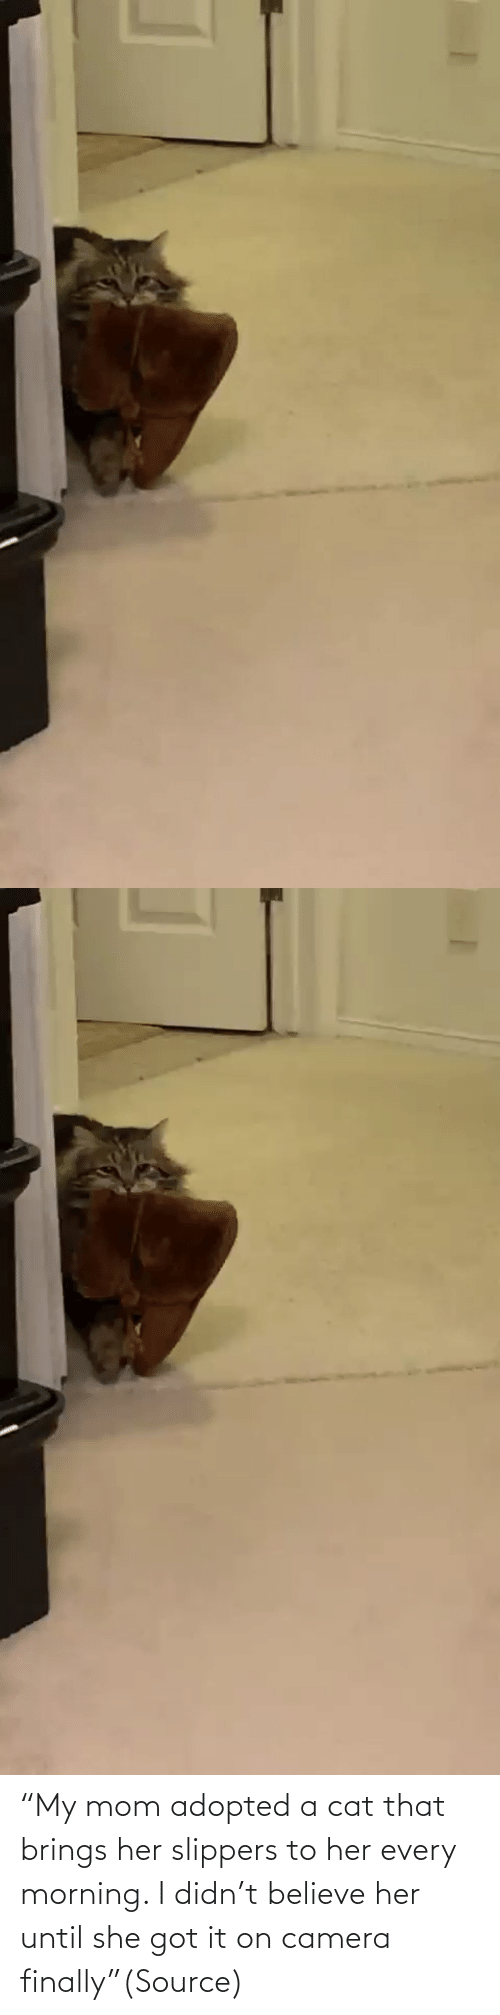 "my mom: ""My mom adopted a cat that brings her slippers to her every morning. I didn't believe her until she got it on camera finally""(Source)"